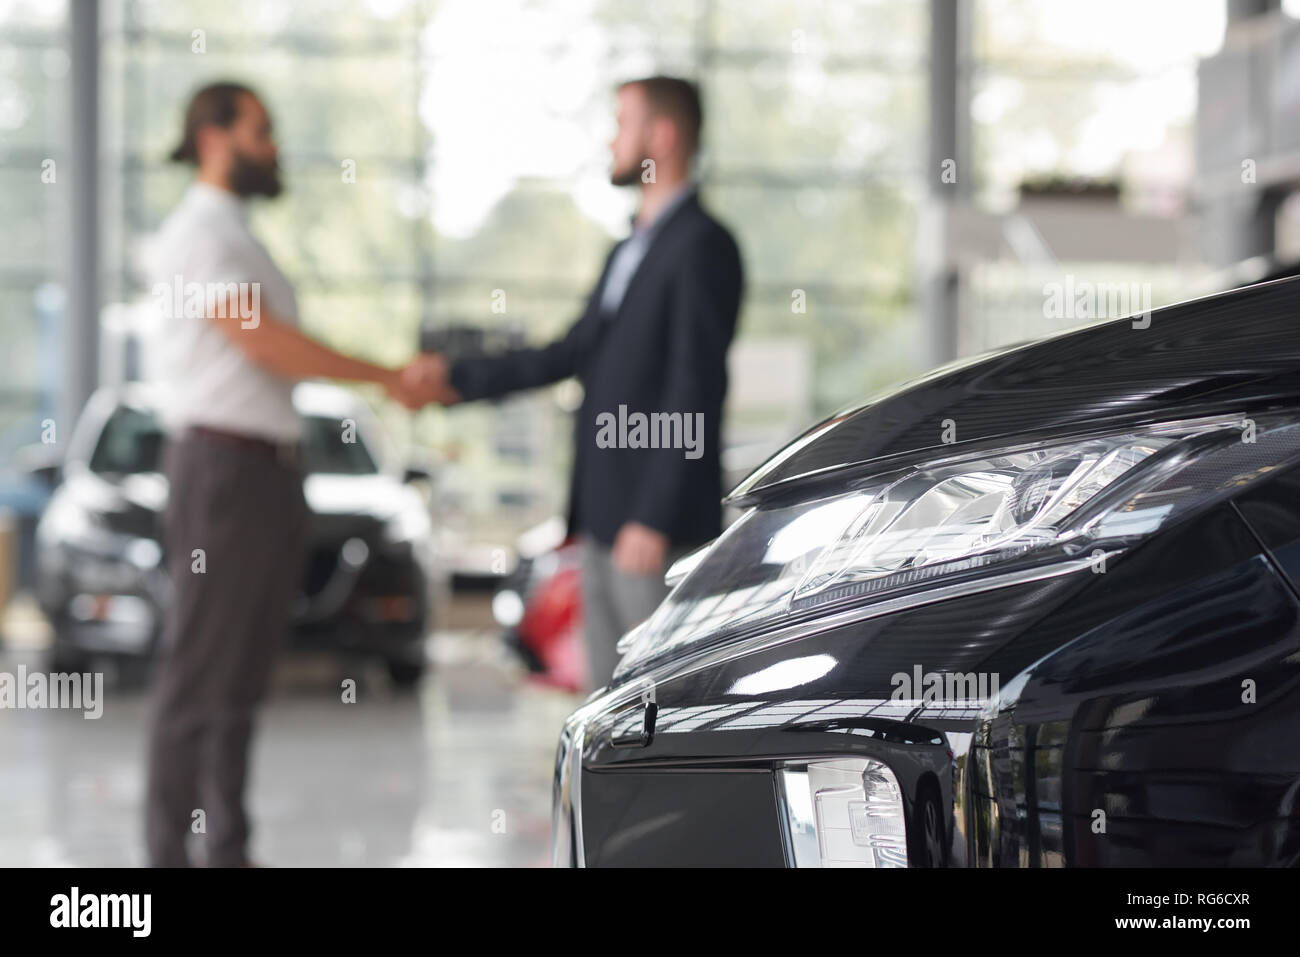 Automobile headlight and men standing behind. Car dealer and client of car dealership shaking hands. Manager and customer making deal on purchasing vehicle. Modern auto showroom. - Stock Image